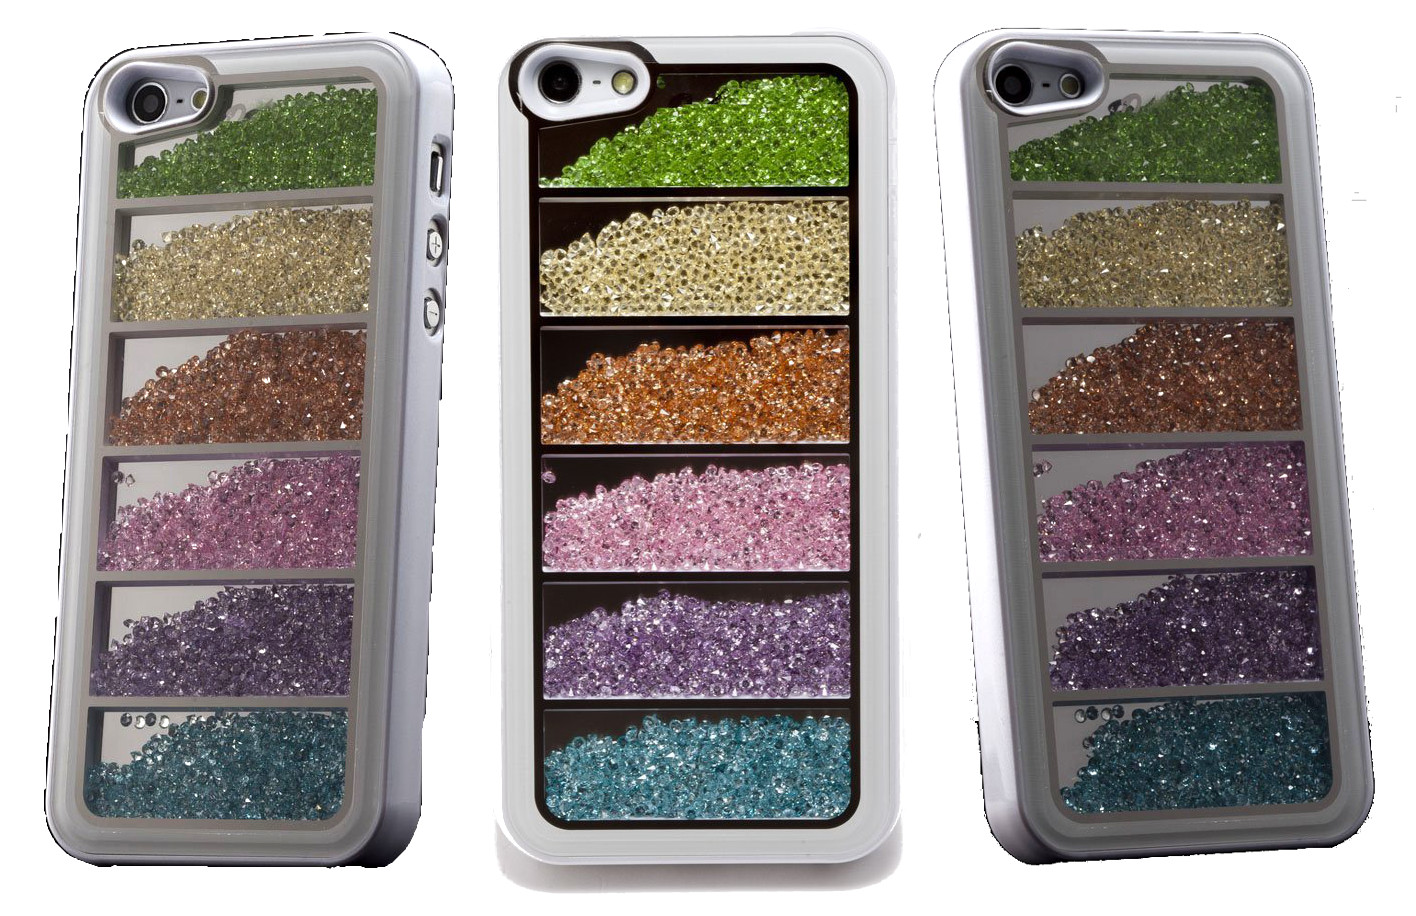 33d1fc5dac41 Swarovski Crystal iPhone 5 Case    Great Things to Buy